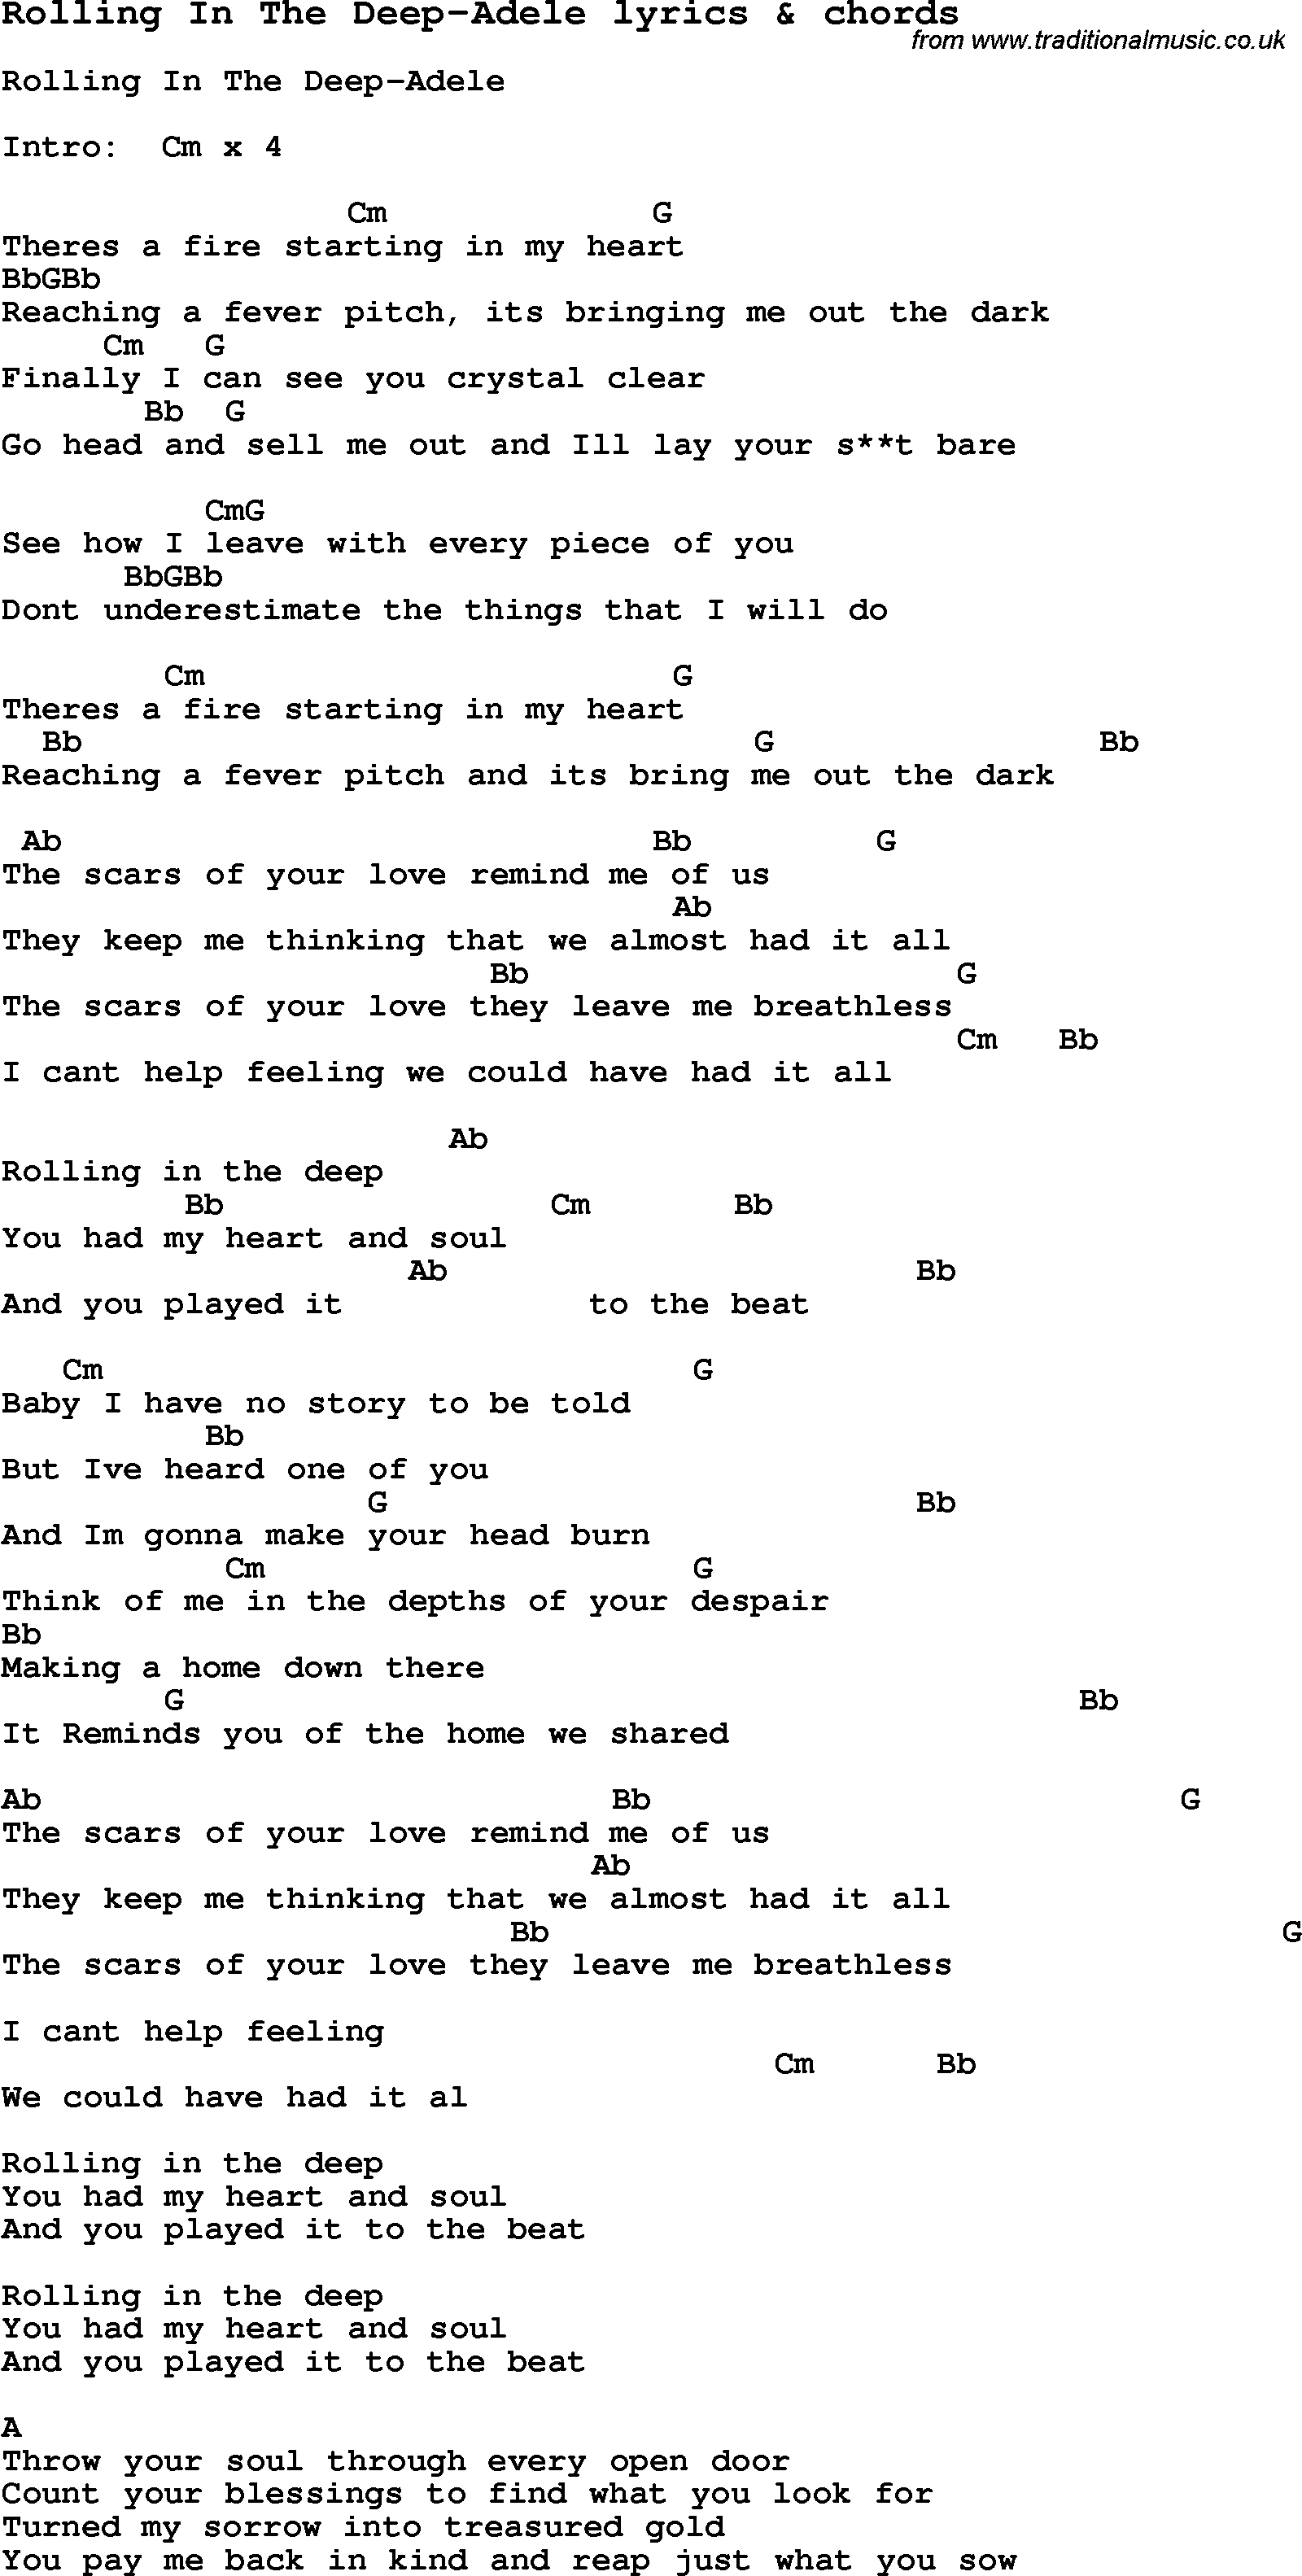 Love Lyrics Forrolling In The Deep Adele With Chords For Ukulele